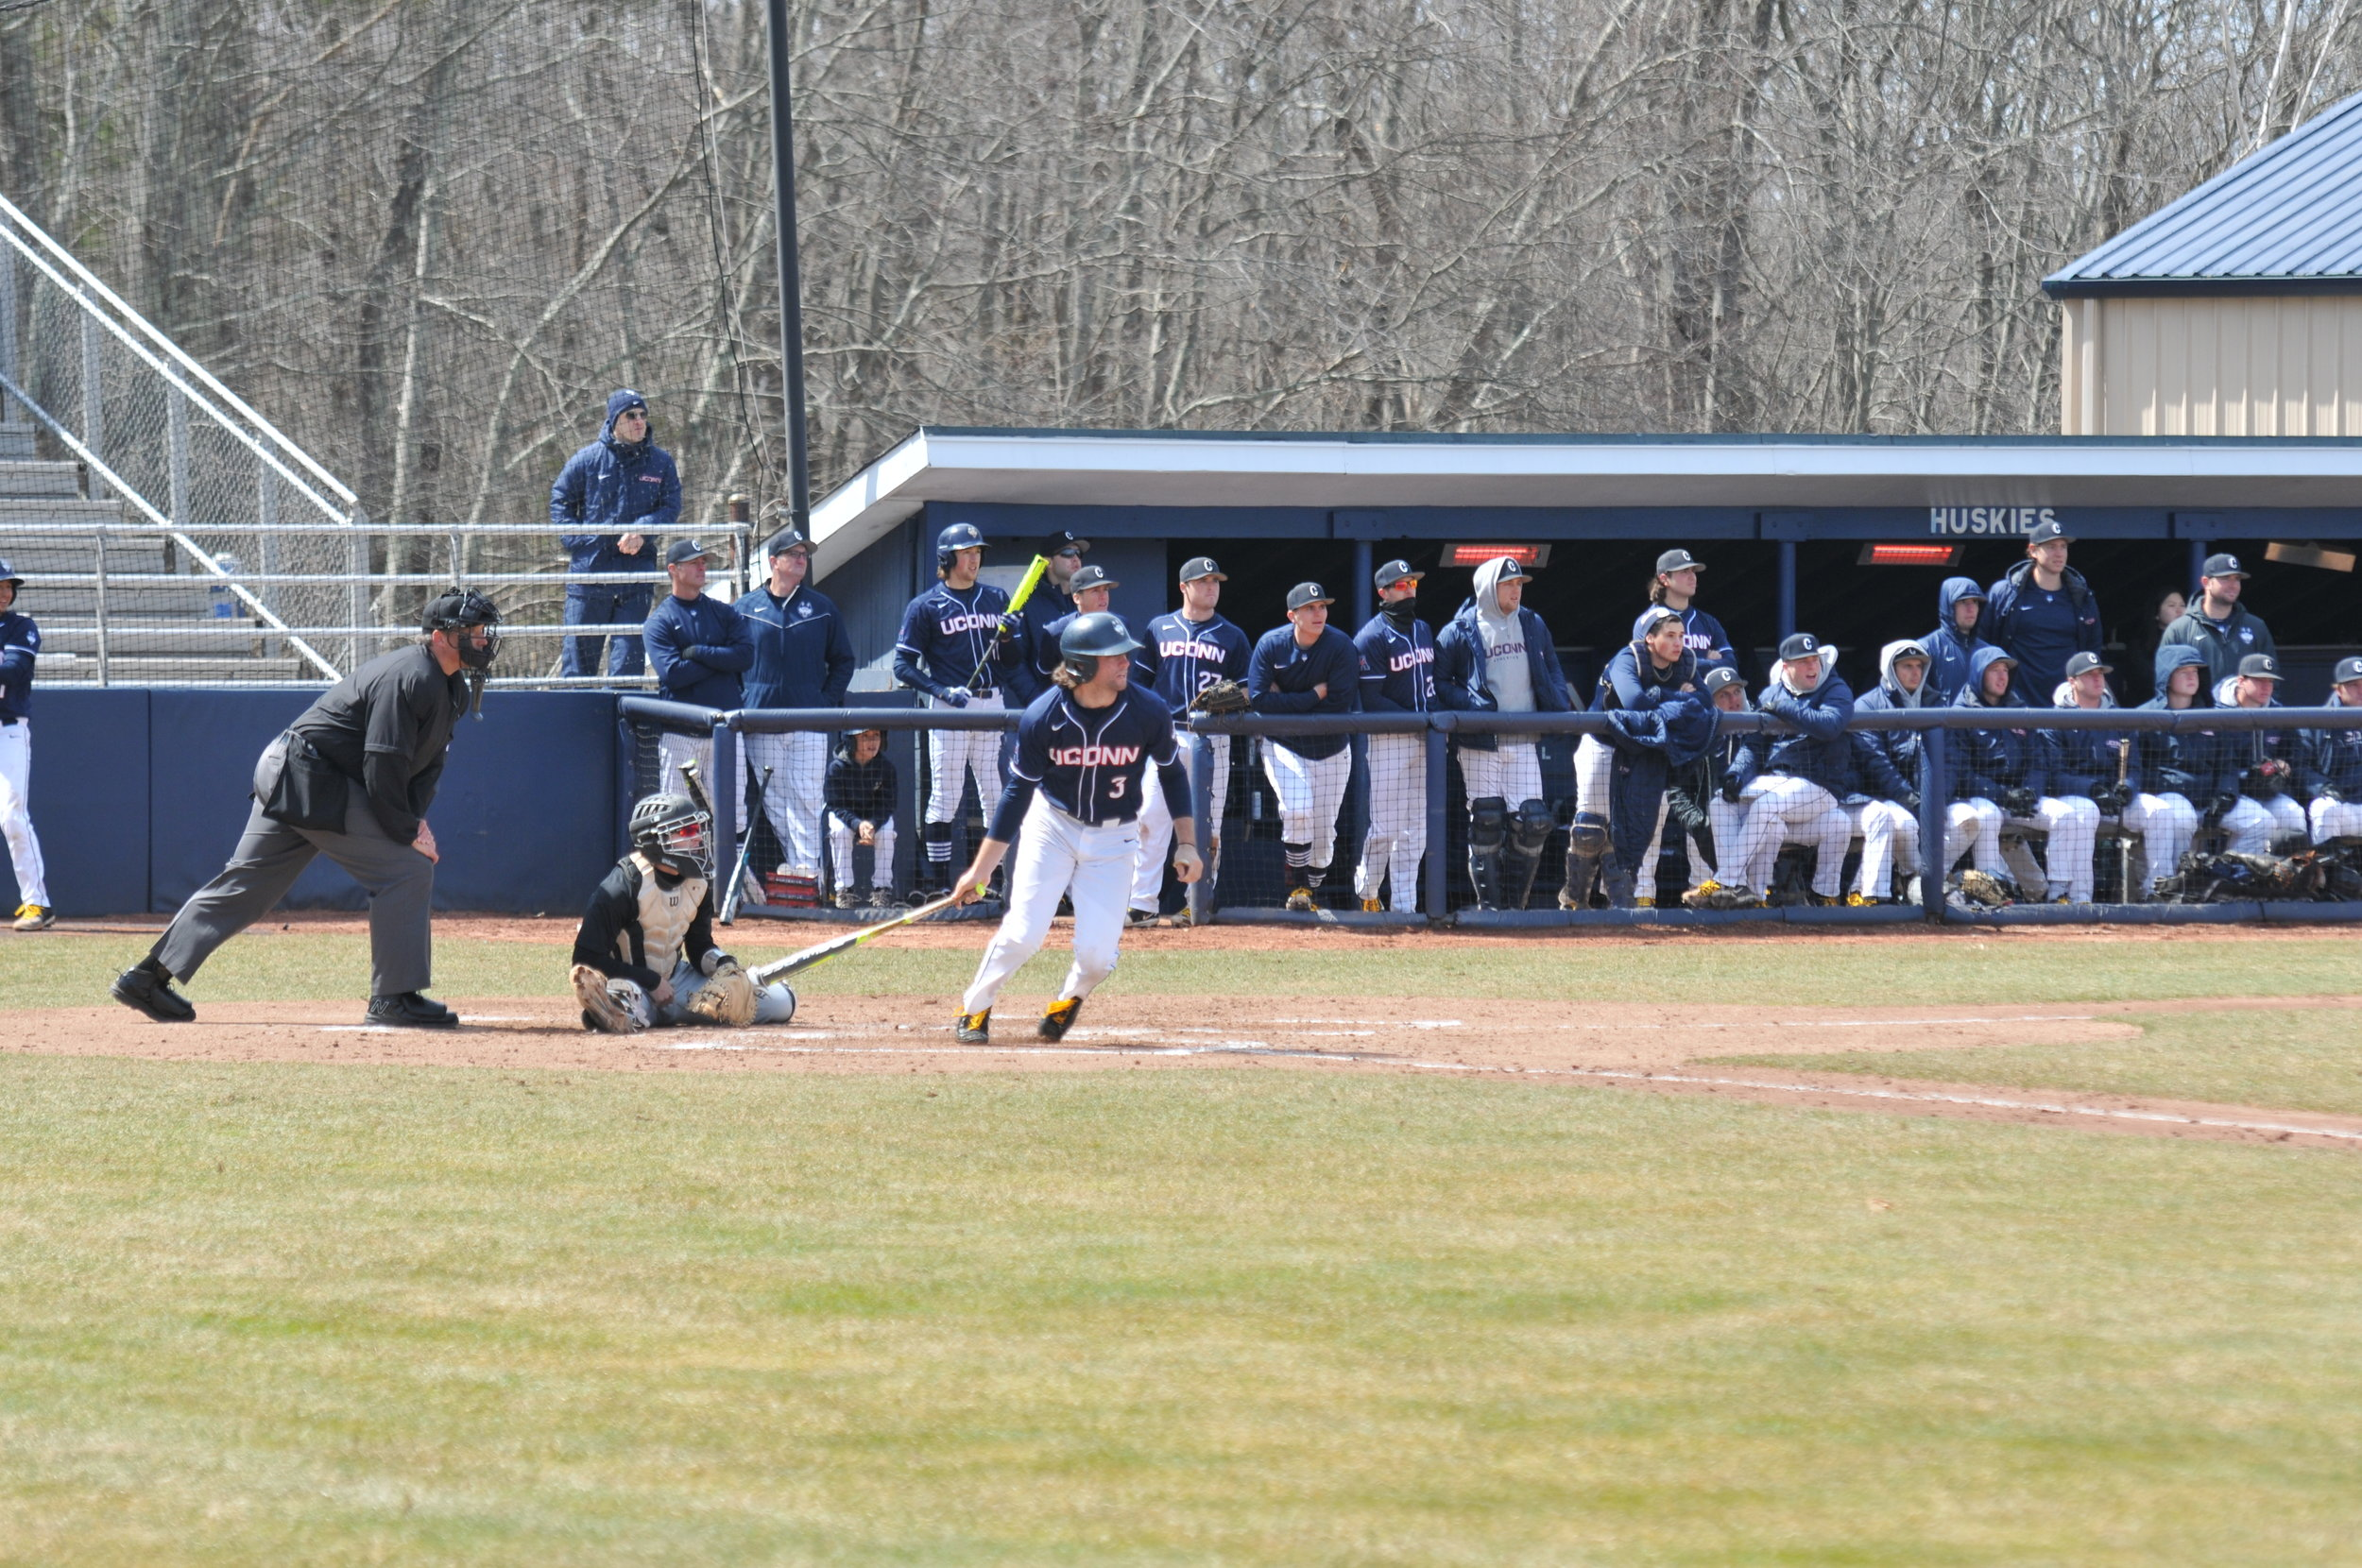 UConn took to the plate against USF on Saturday, Apr. 8 at Christian Field. The Huskies, in a double header, lost 10-8 on Saturday and won 6-2 on Sunday. (Photo by Jon Sammis/The Daily Campus)